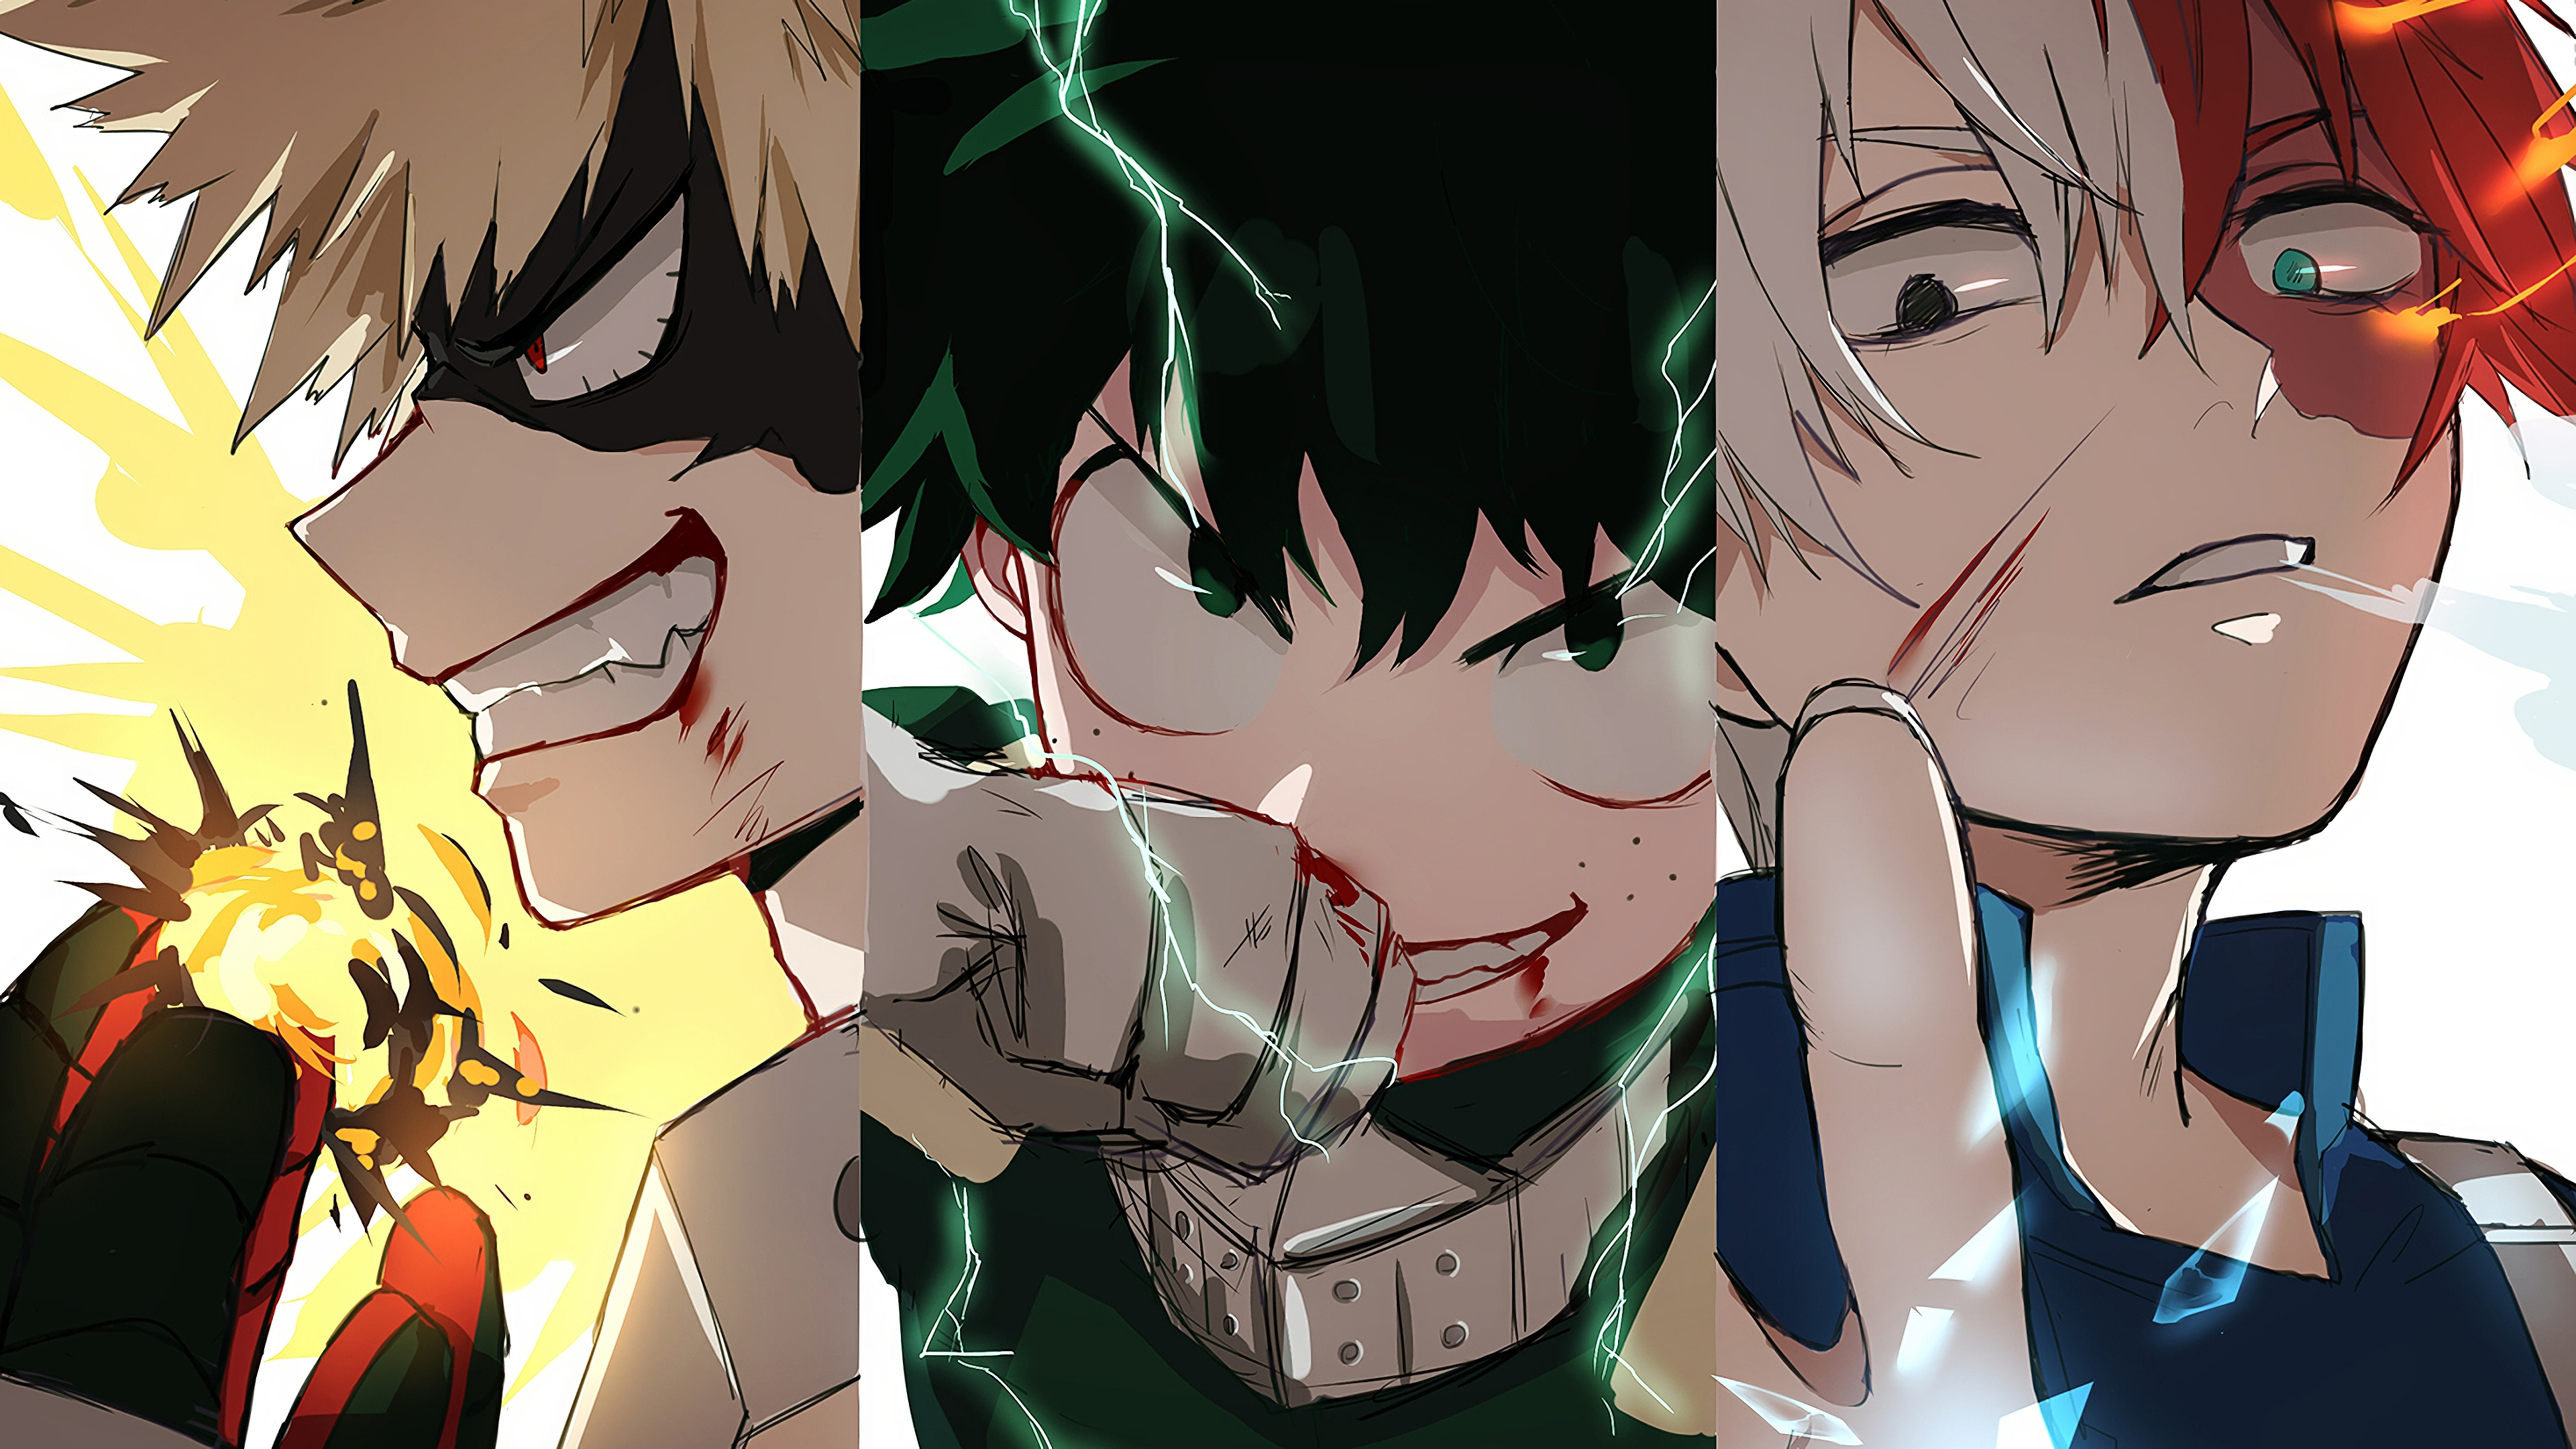 See the handpicked my hero academia wallpaper deku images and share with your frends and social sites. Boku No Hero Academia Todoroki X Deku - Anime Wallpapers